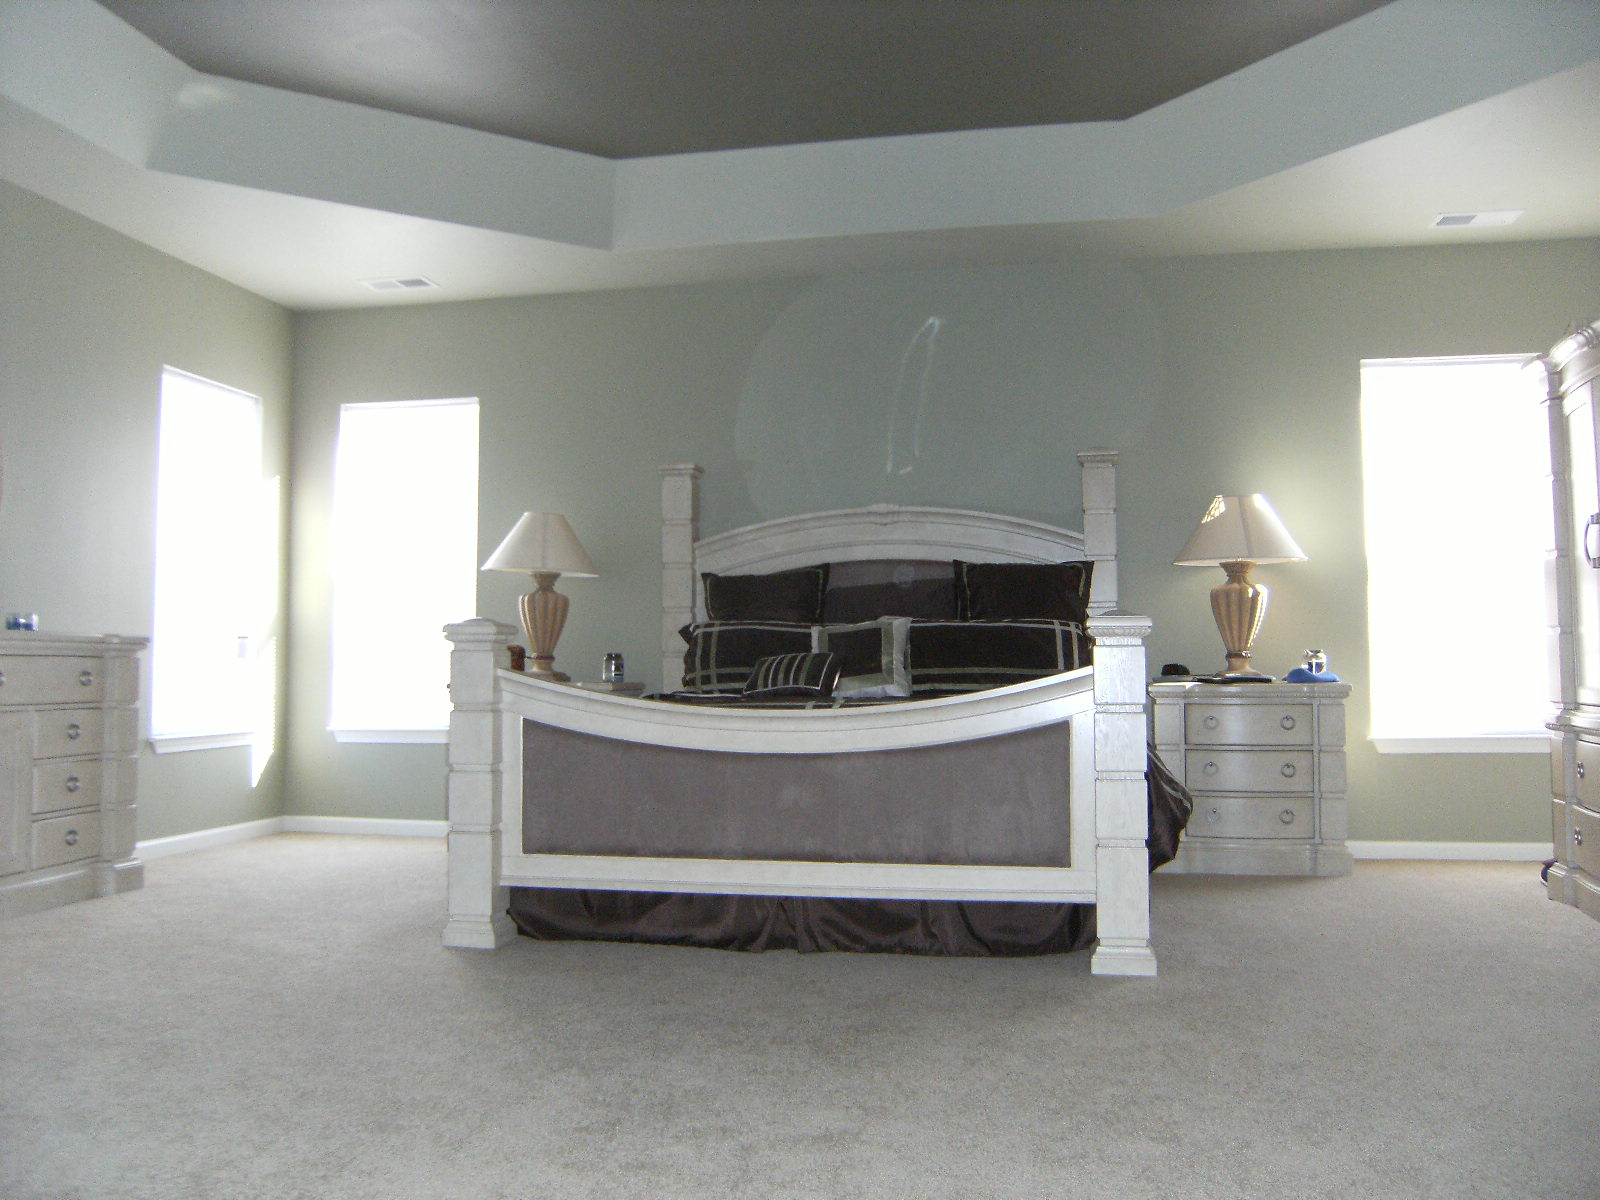 Luxury Bedroom Designs Marie Antoi te likewise Cd The Katrina Cottage   Model 1185 301615224 besides Peka Peka A Beautiful Concrete Dome Home Up For Sale in addition Toy Trucks Parts Images as well Floor Plan Furniture Clip Art. on master bedroom furniture scale